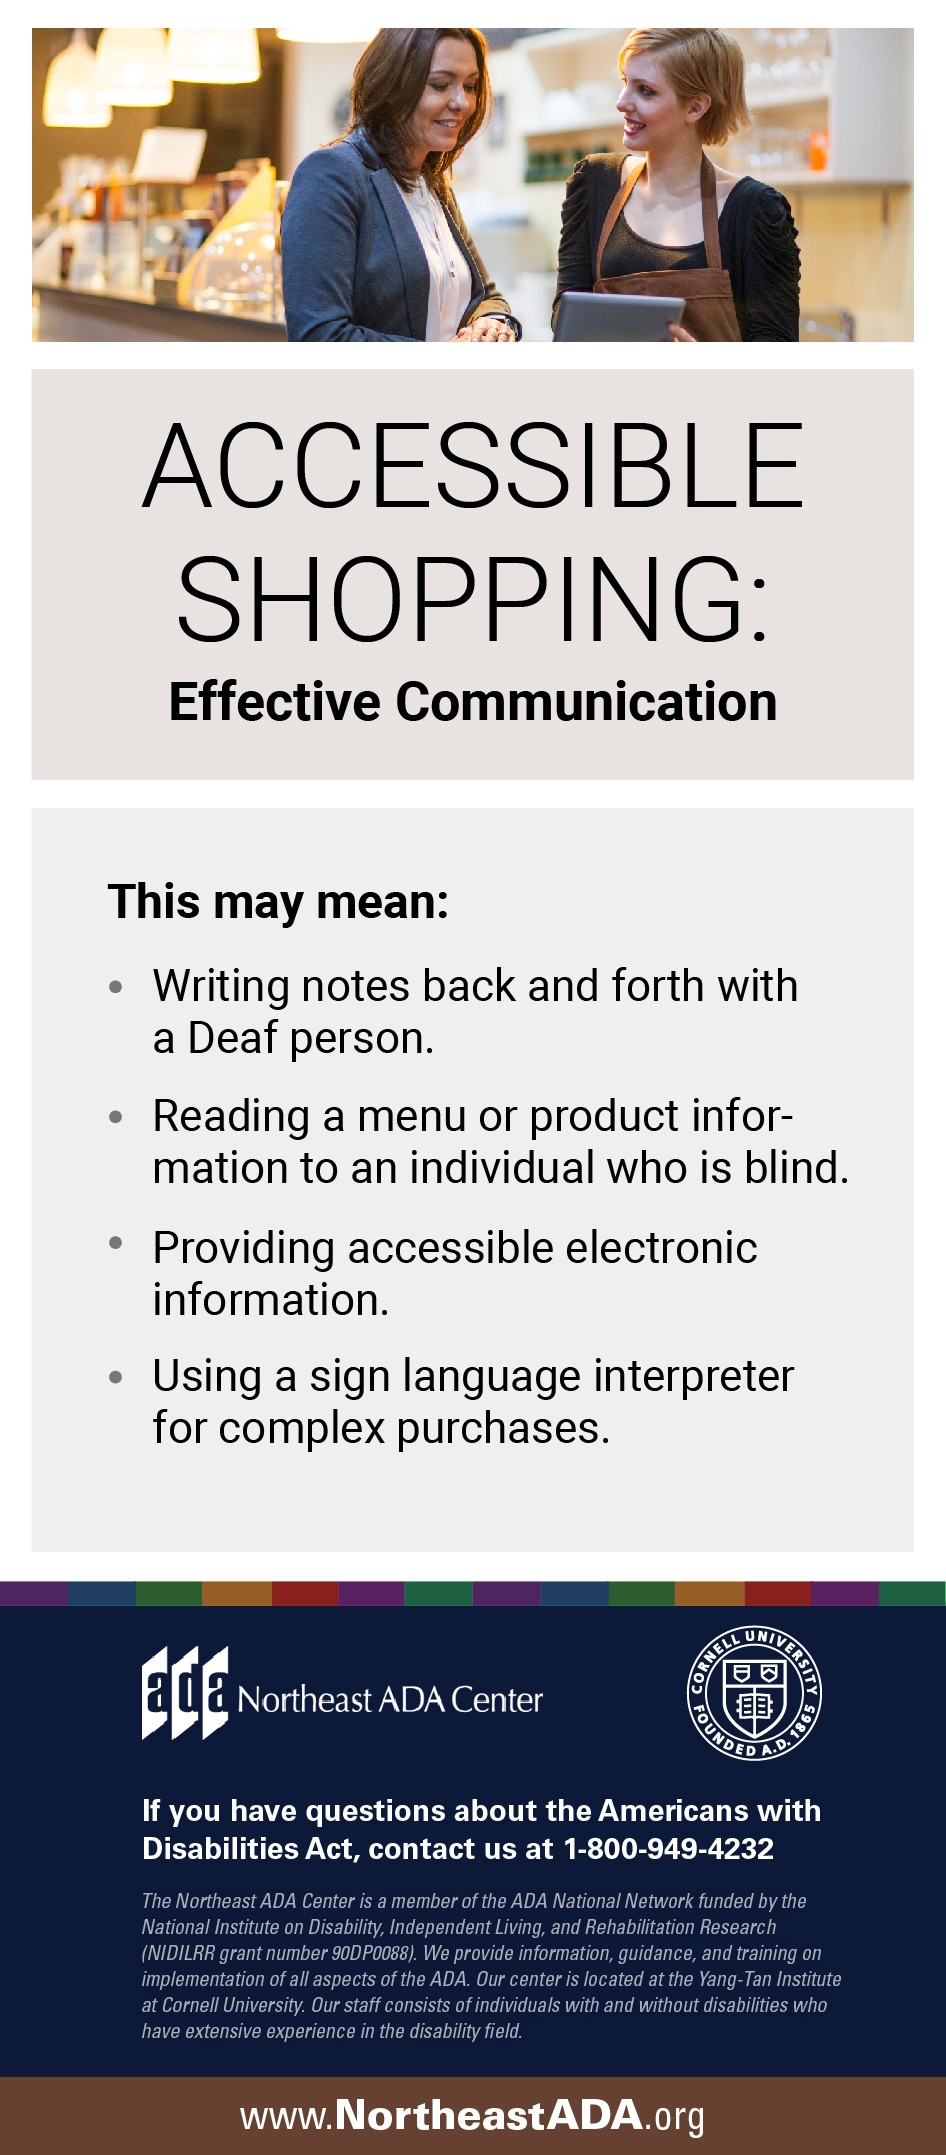 Infographic titled 'Accessible Shopping: Effective Communication' featuring two women looking at a tablet in a store.